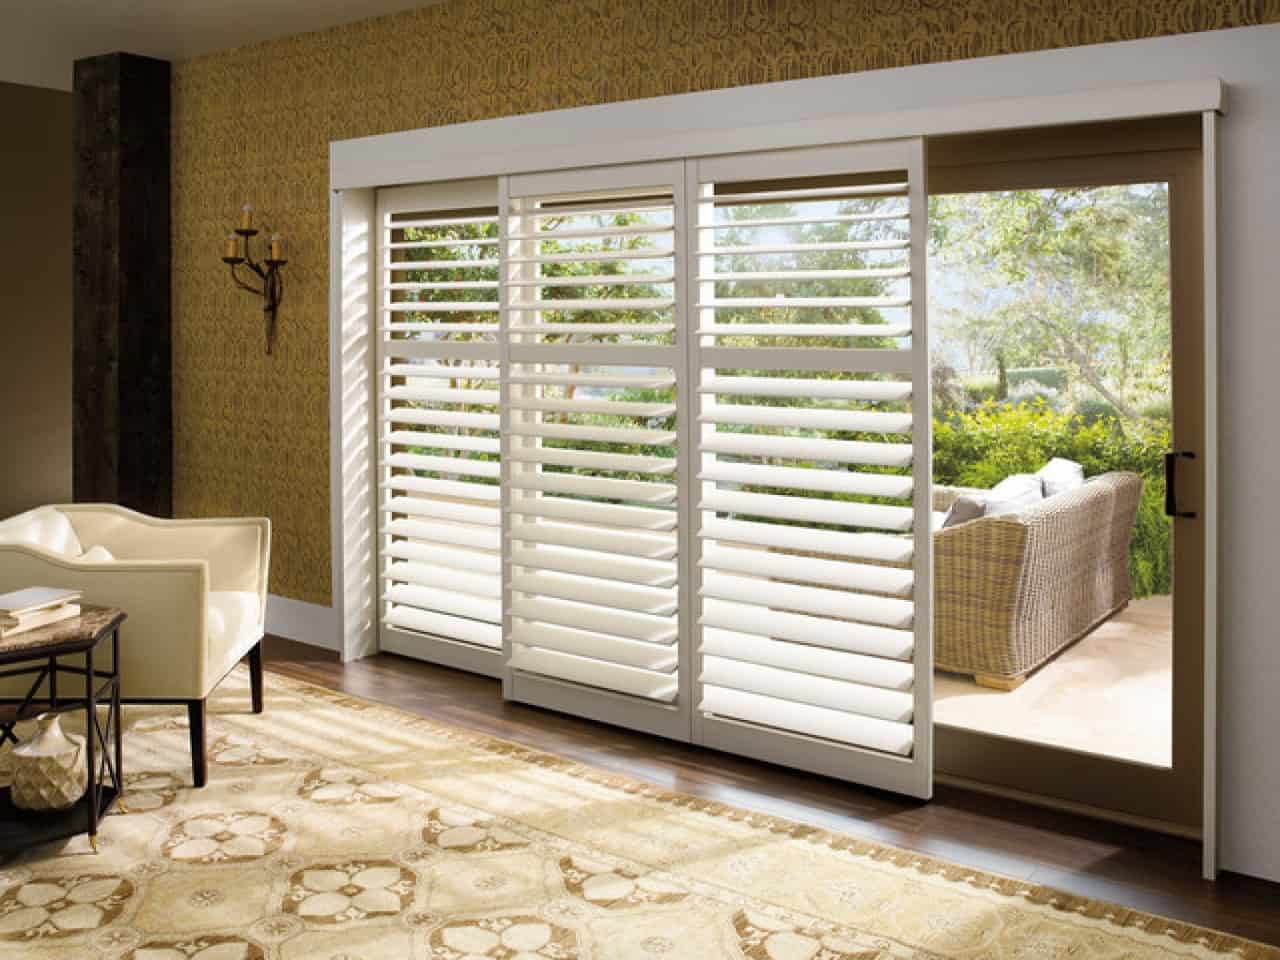 Window treatments for sliding glass doors ideas tips plantation shutters for sliding glass patio doors rubansaba